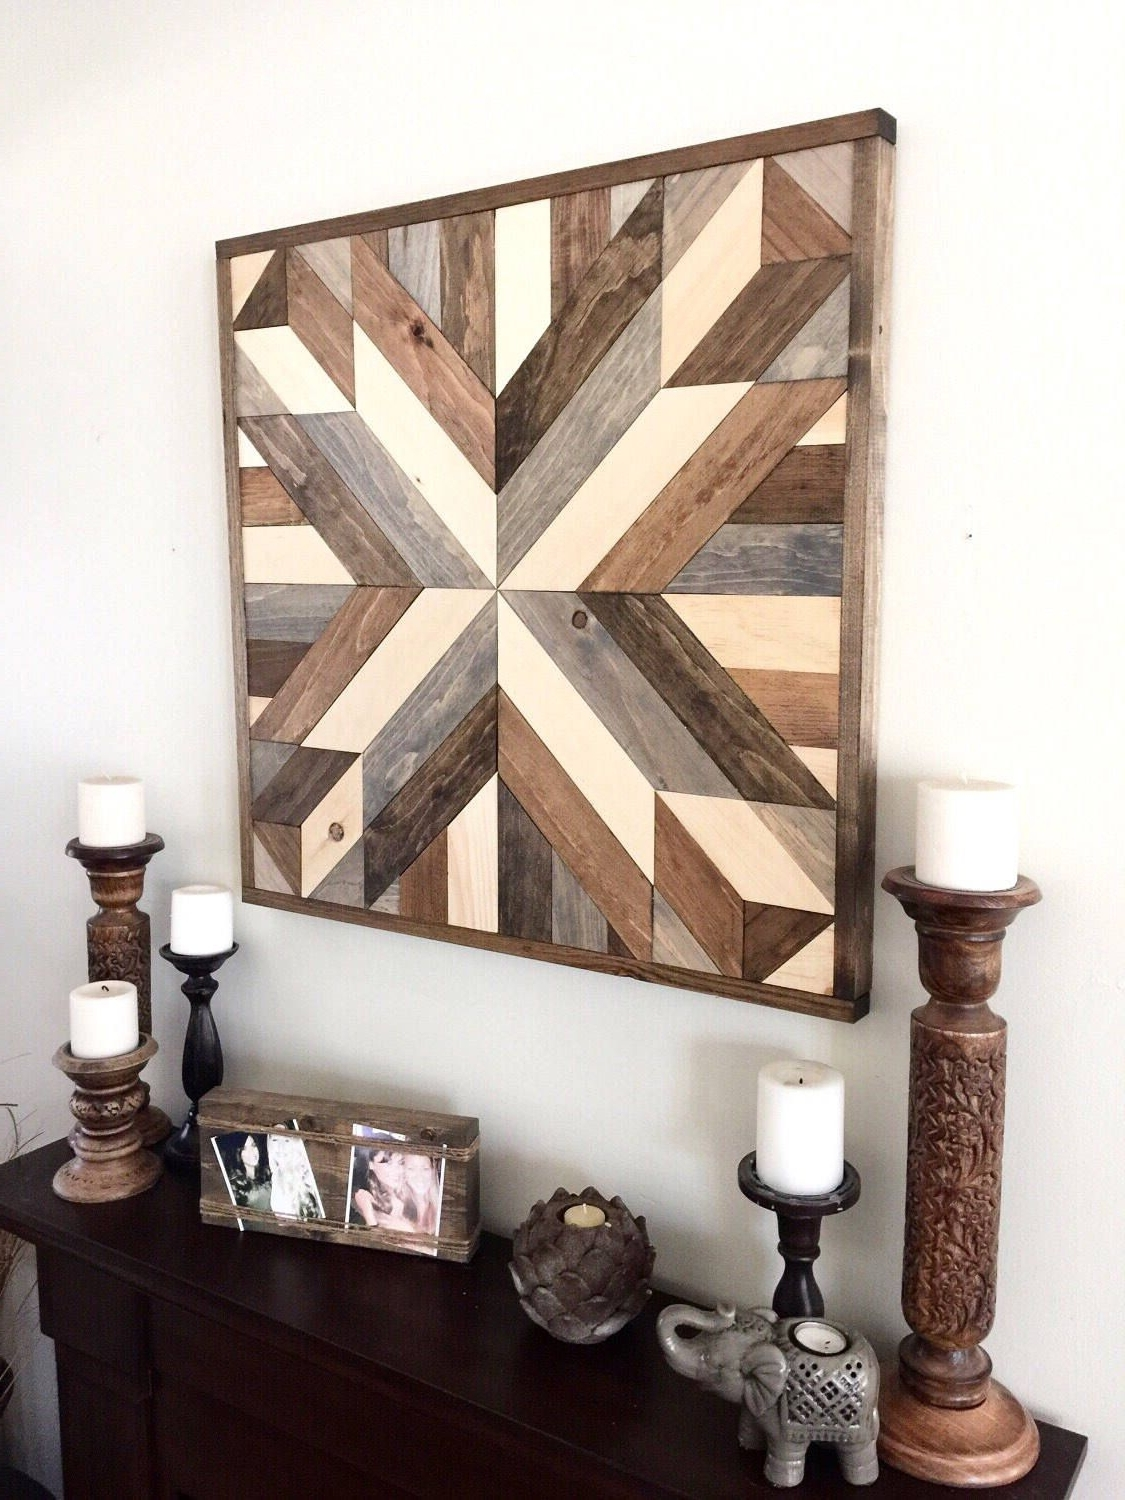 Famous Reclaimed Wood Wall Art Inside Reclaimed Wood Wall Art, Wood Art, Rustic Wall Decor, Farmhouse (View 10 of 15)